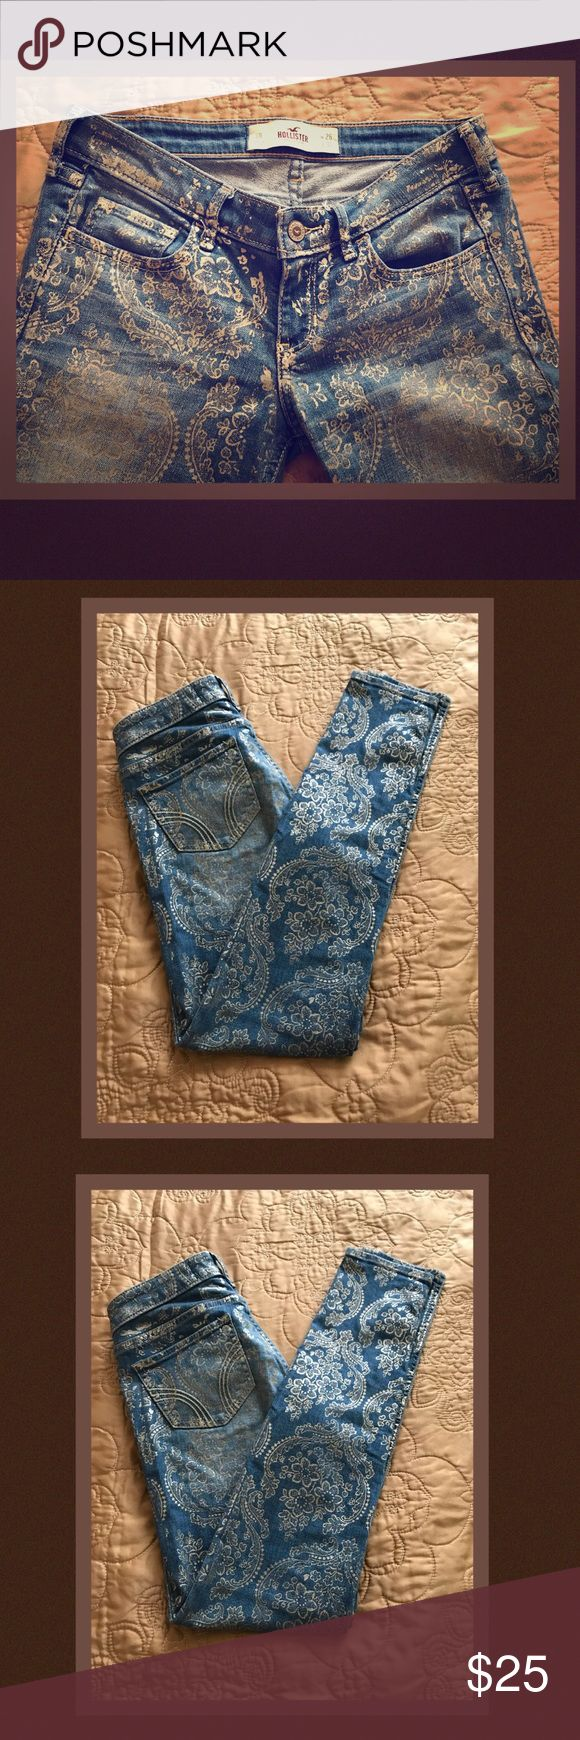 HOLLISTER CALIFORNIA JEANS Gold embellished print make these jeans irresistible. Hollister Jeans Skinny